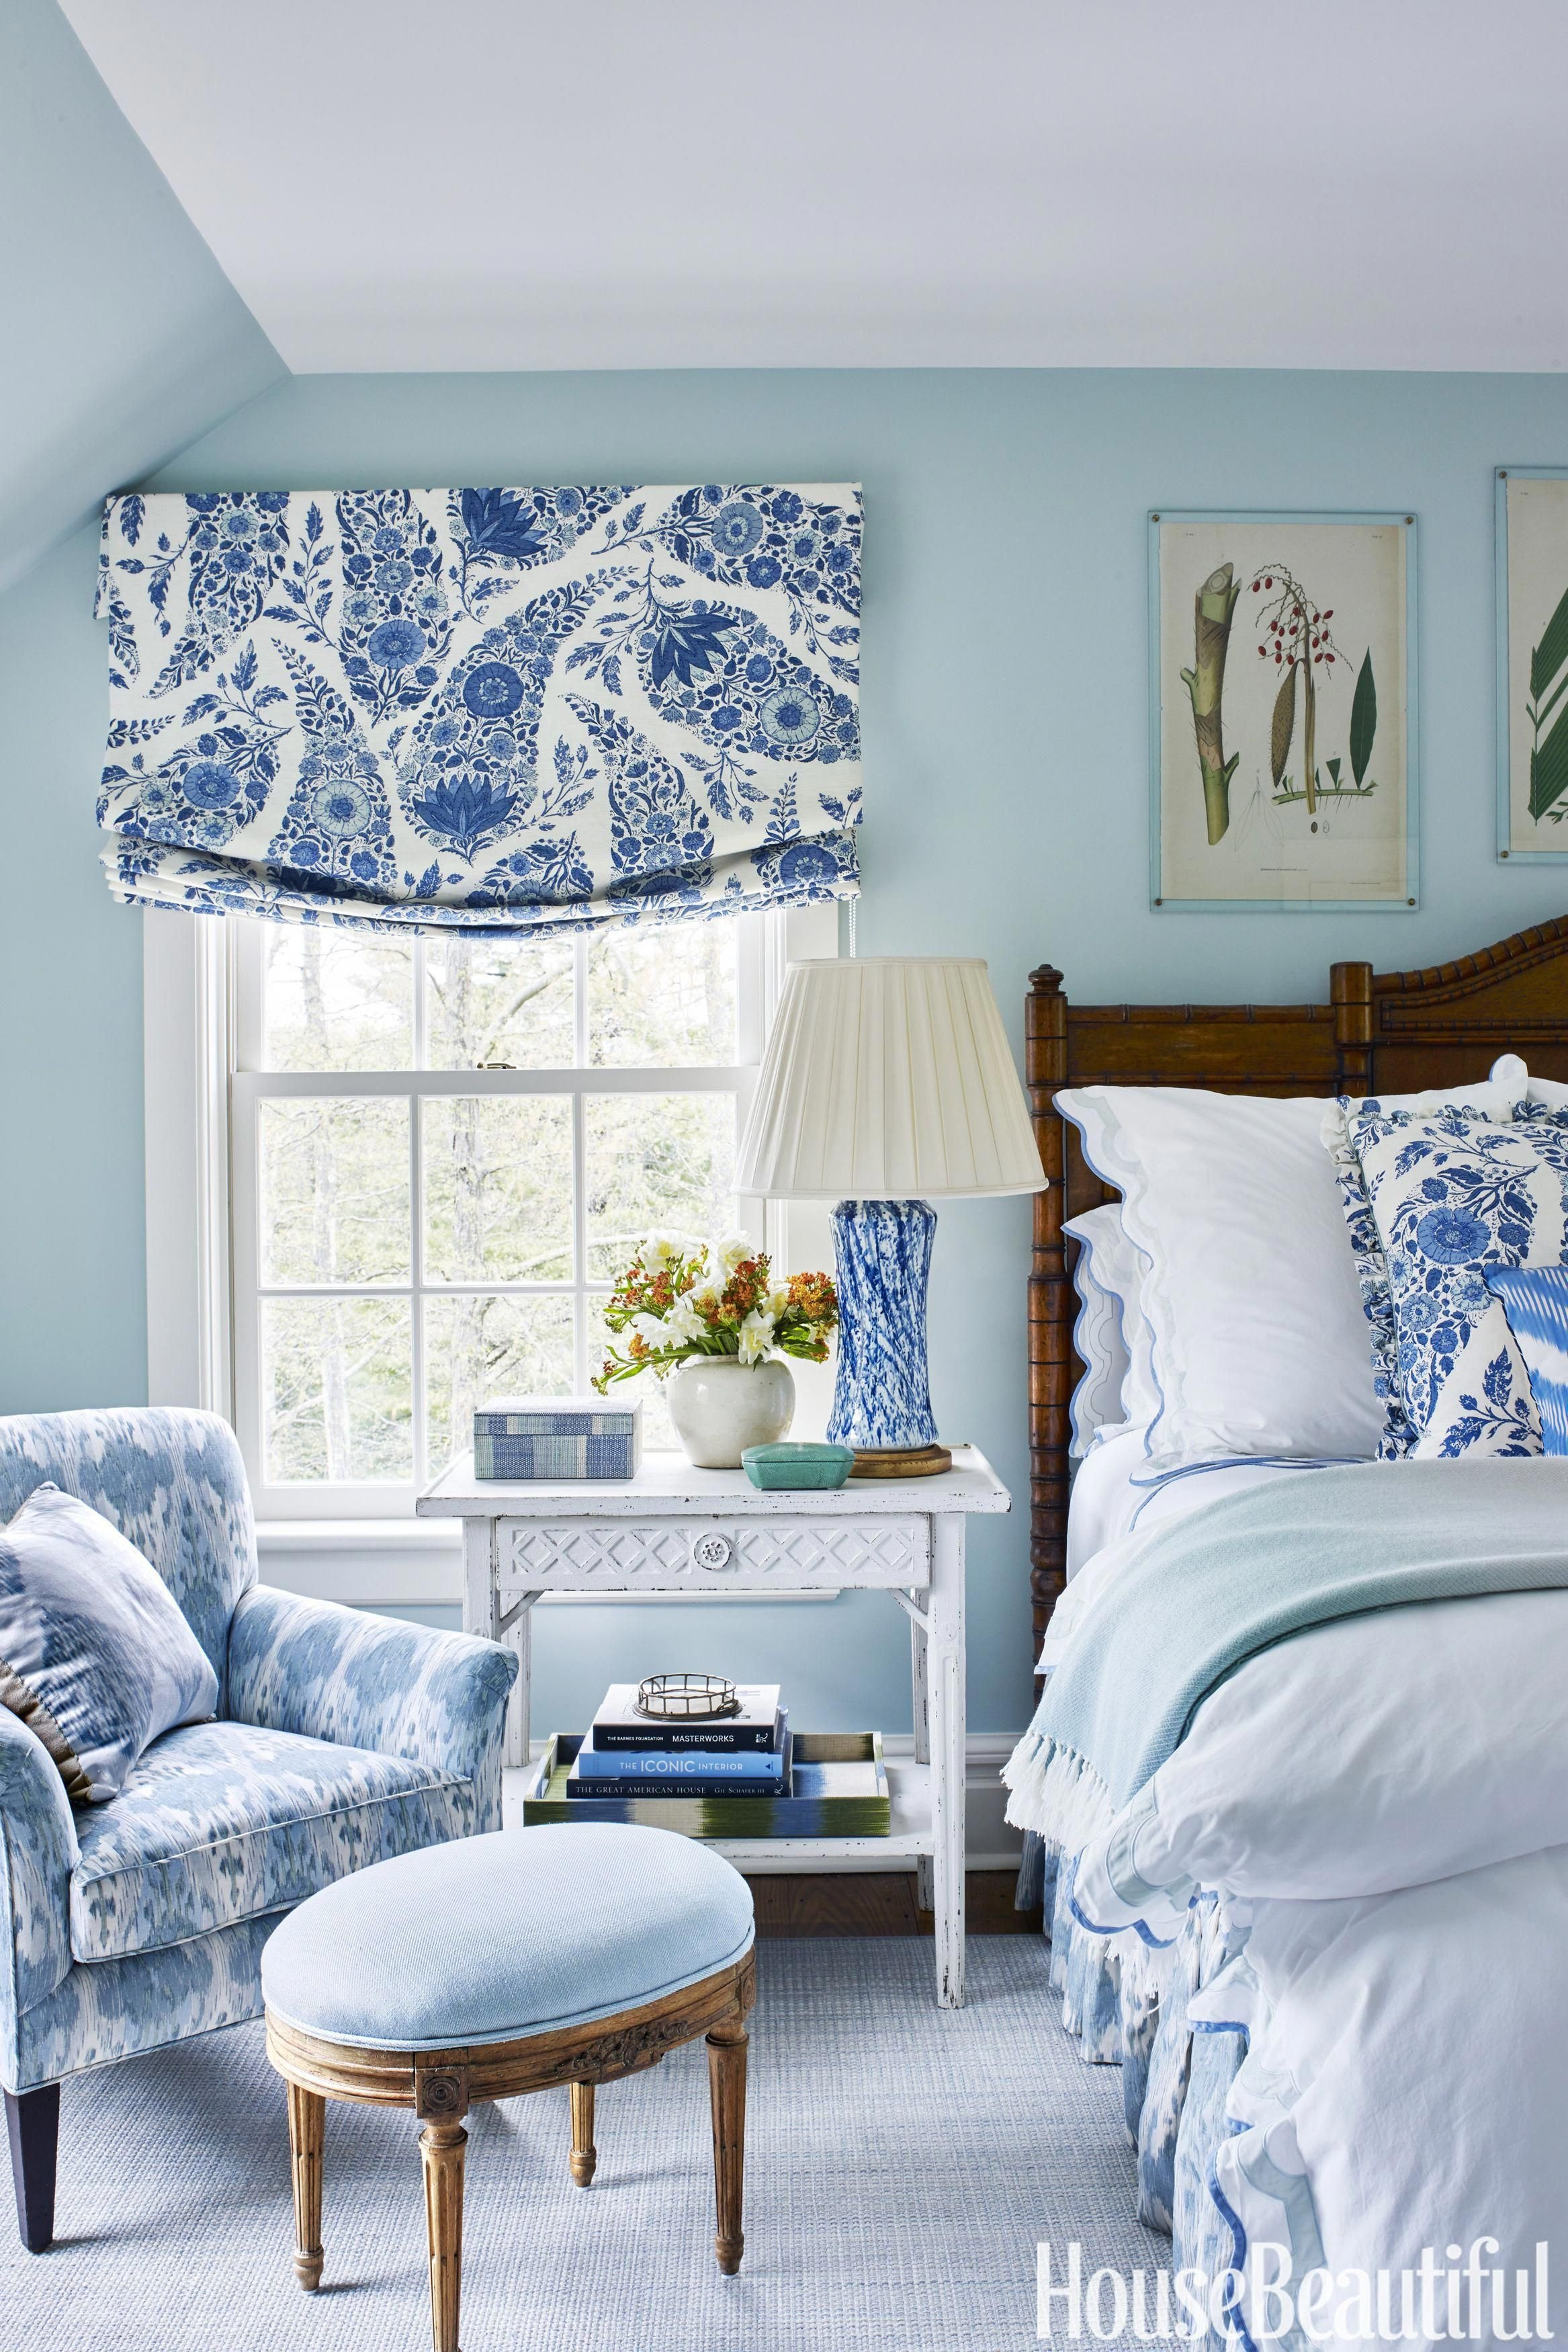 Shades Of Blue for Bedroom Fresh Bedroom Classic Blue and White Makes An Appearance In the